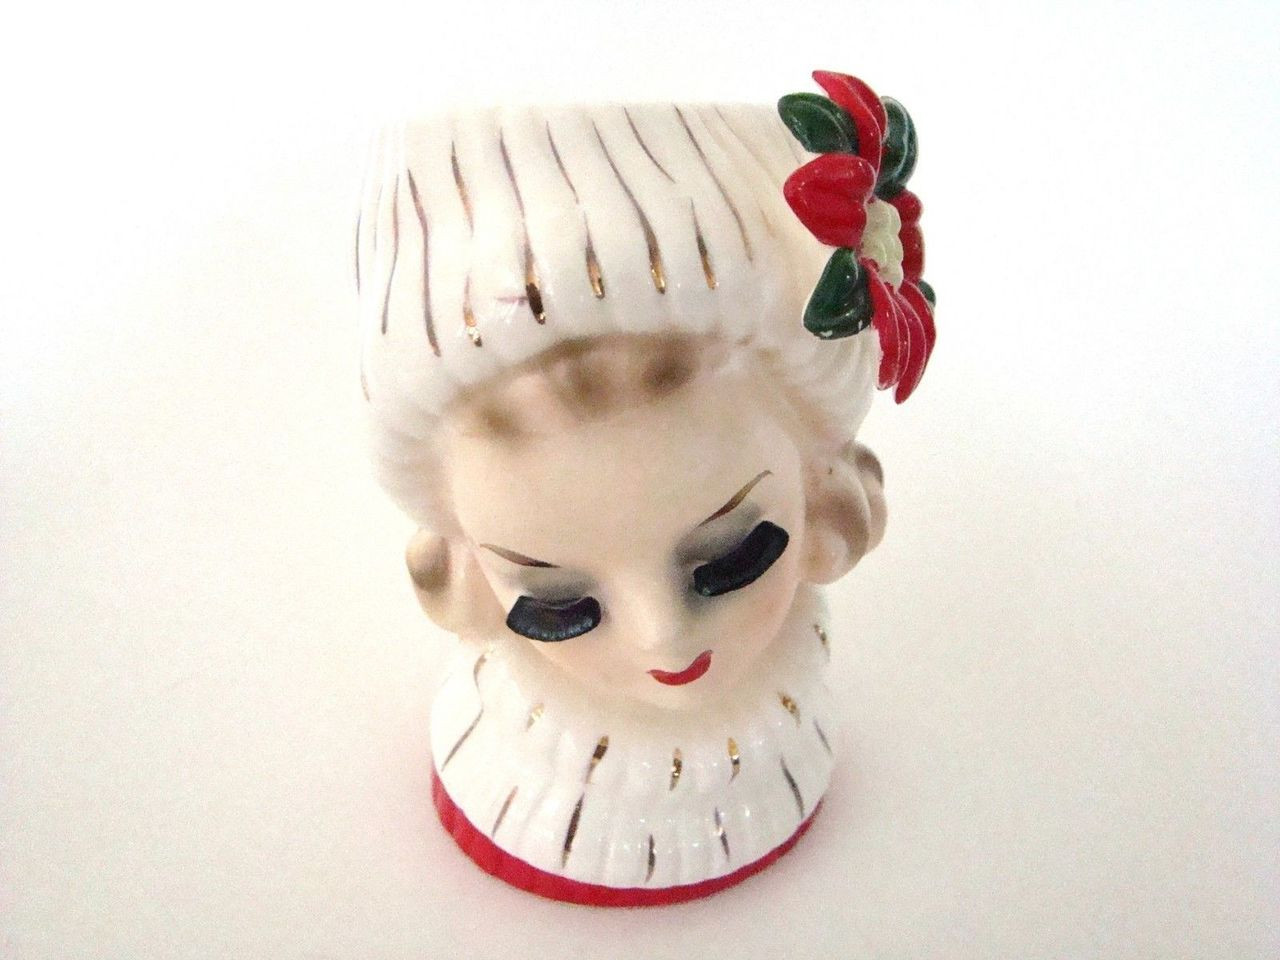 Vintage authentic Lady Head Vase Napcoware CX5409